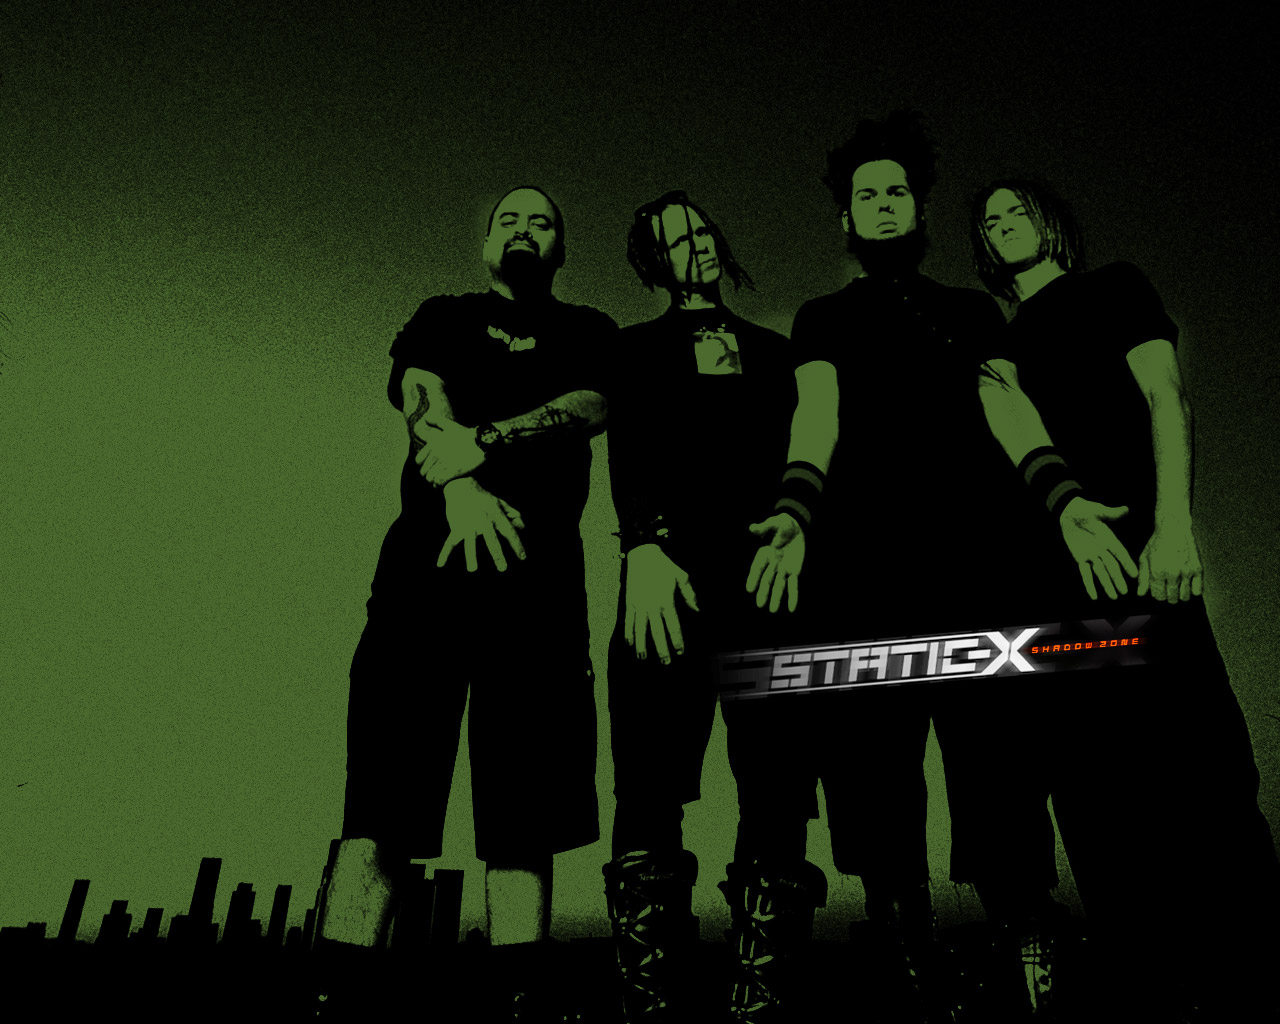 Static X staticx wallpaper 2 1280x1024jpeg 1280x1024